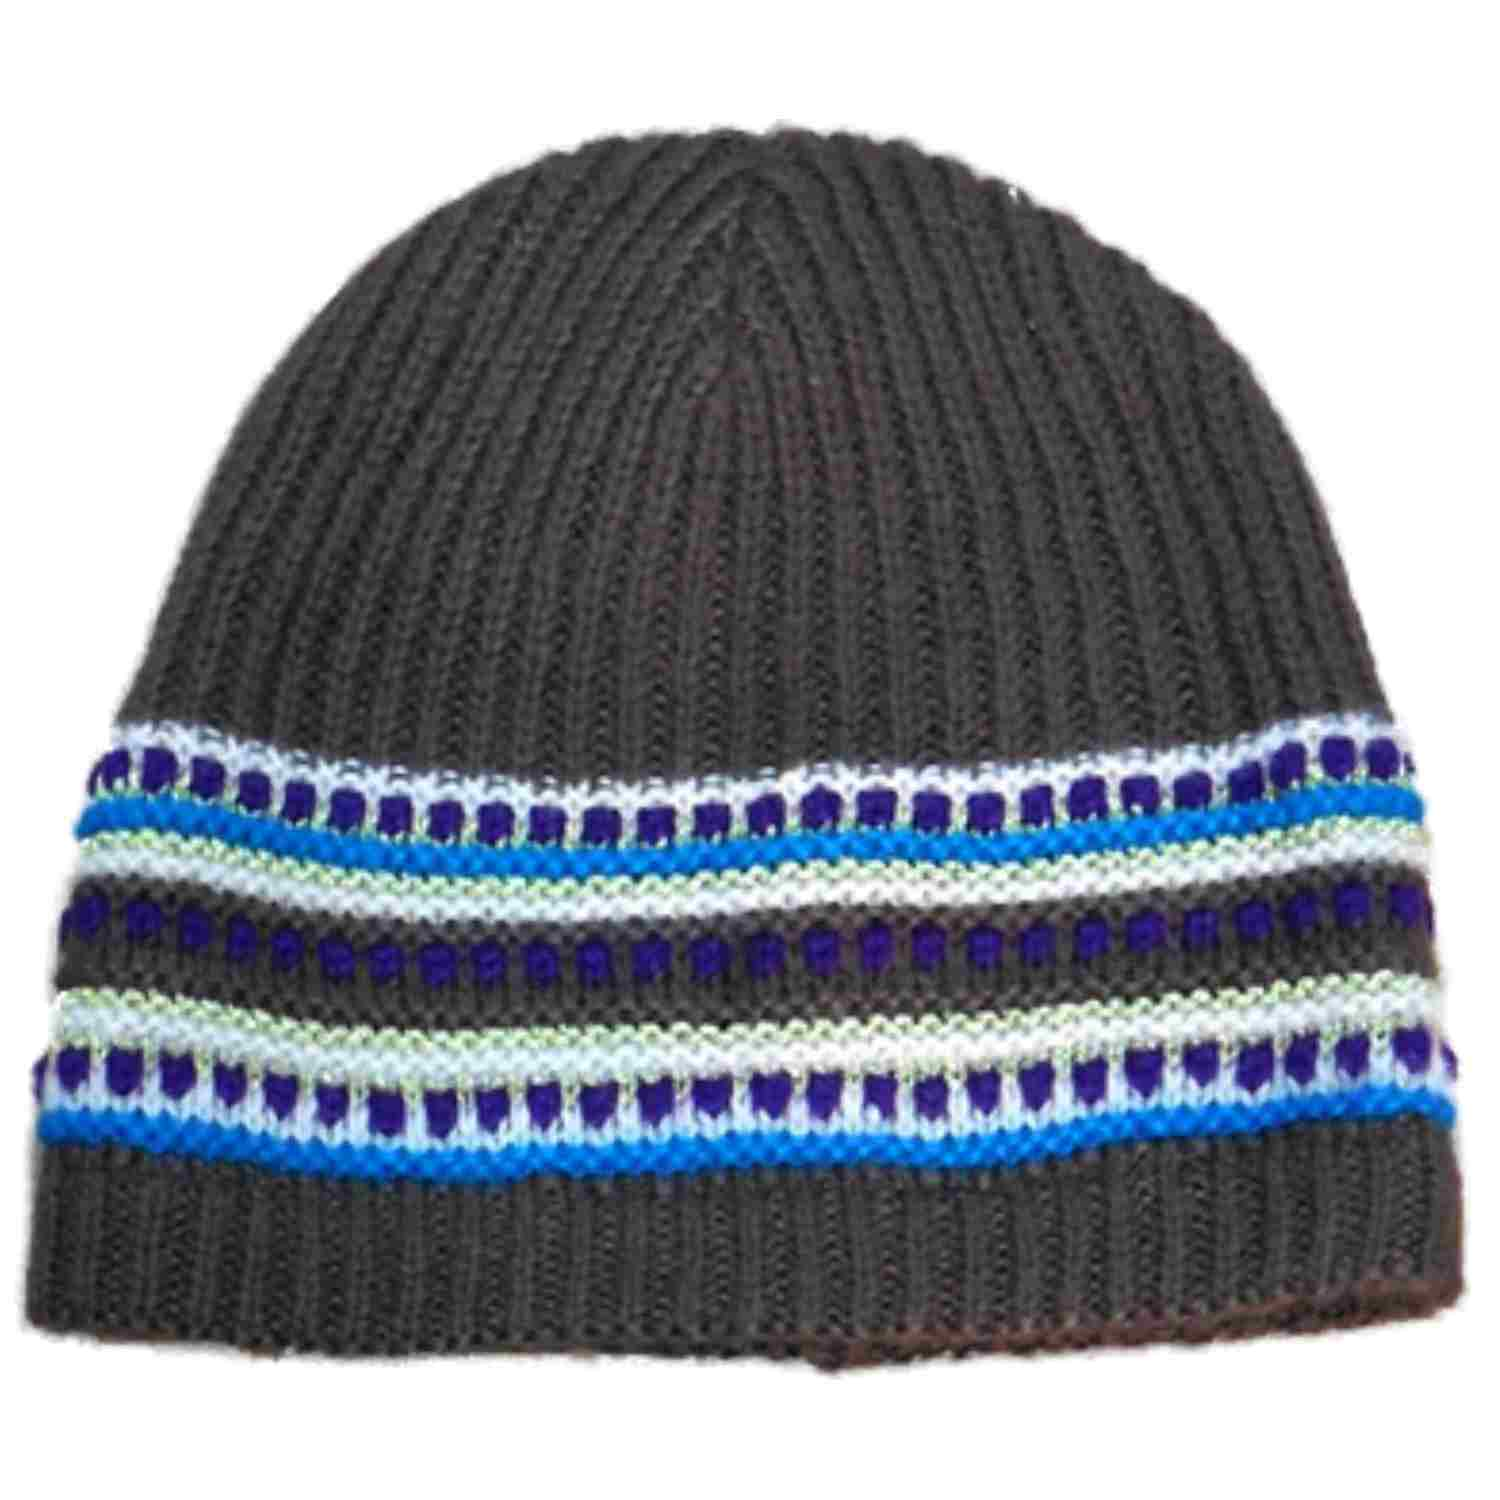 Fownes Womens Brown & Blue Stripe Knit Beanie Stocking Cap Hat